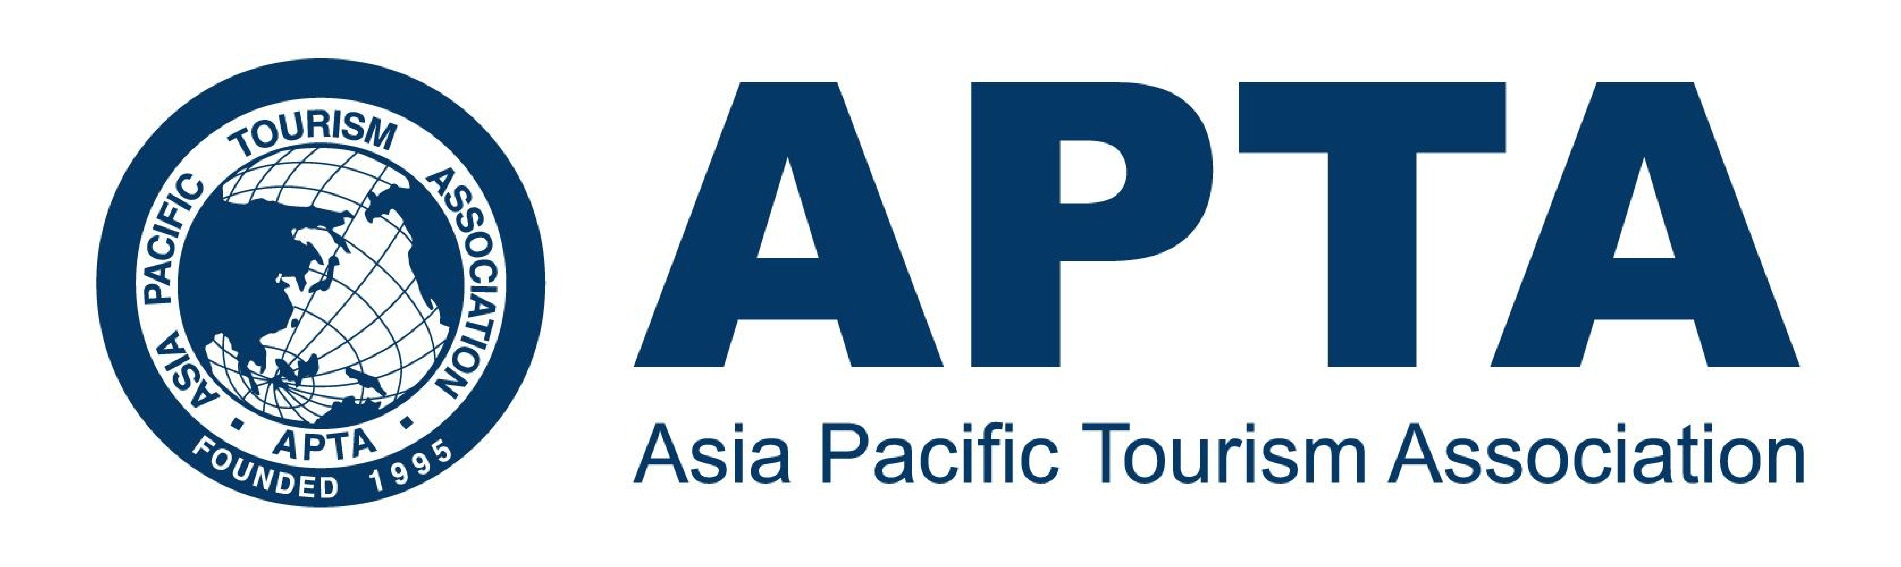 logo for Asia Pacific Tourism Association